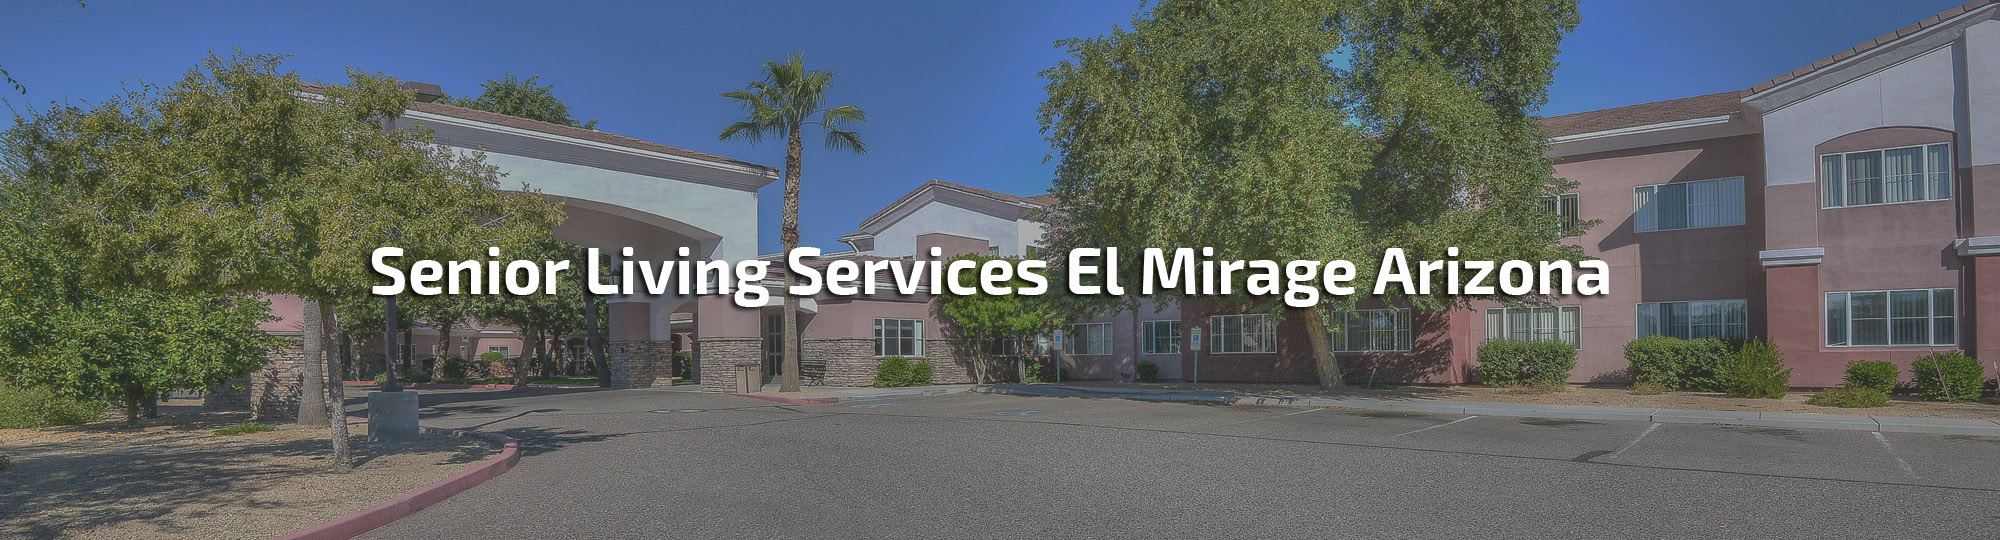 Senior Living Services El Mirage Arizona